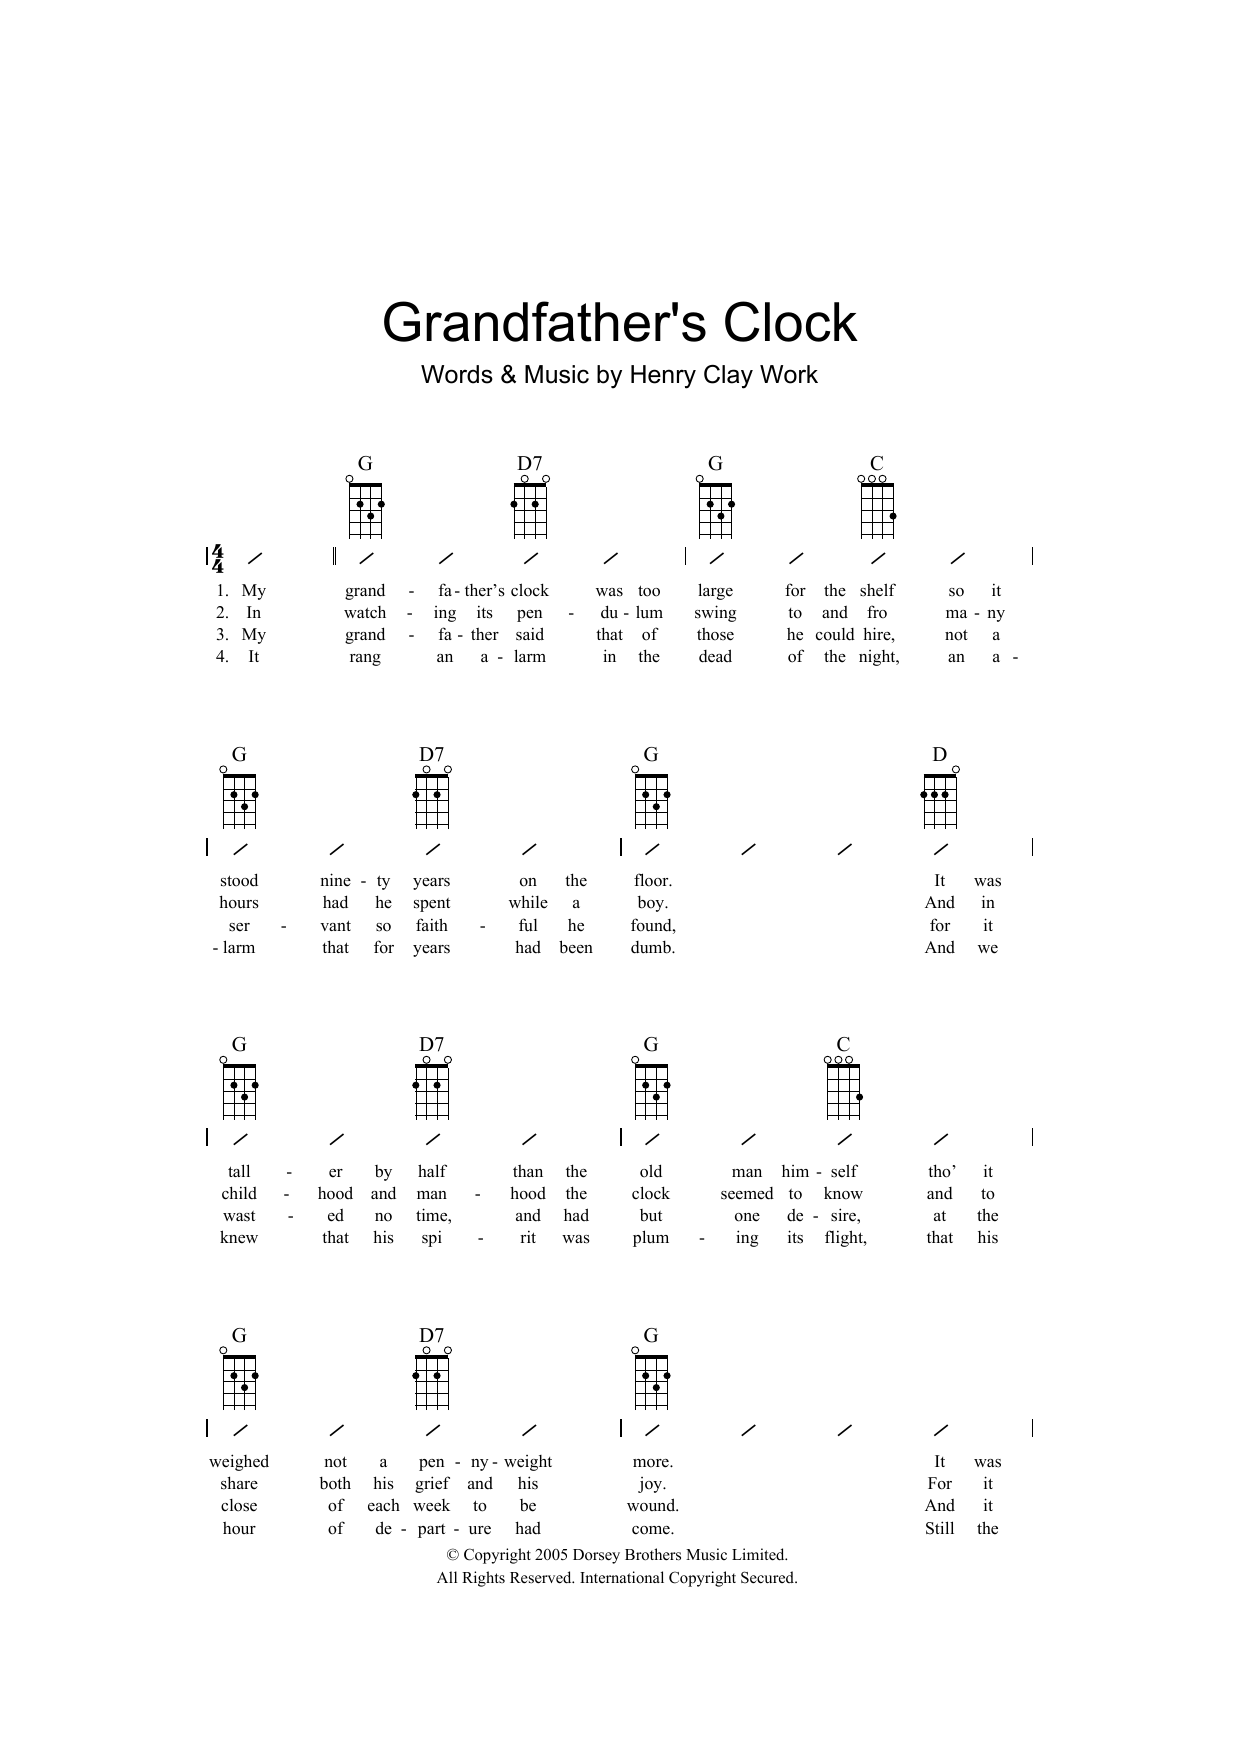 Henry Clay Work - Grandfather's Clock